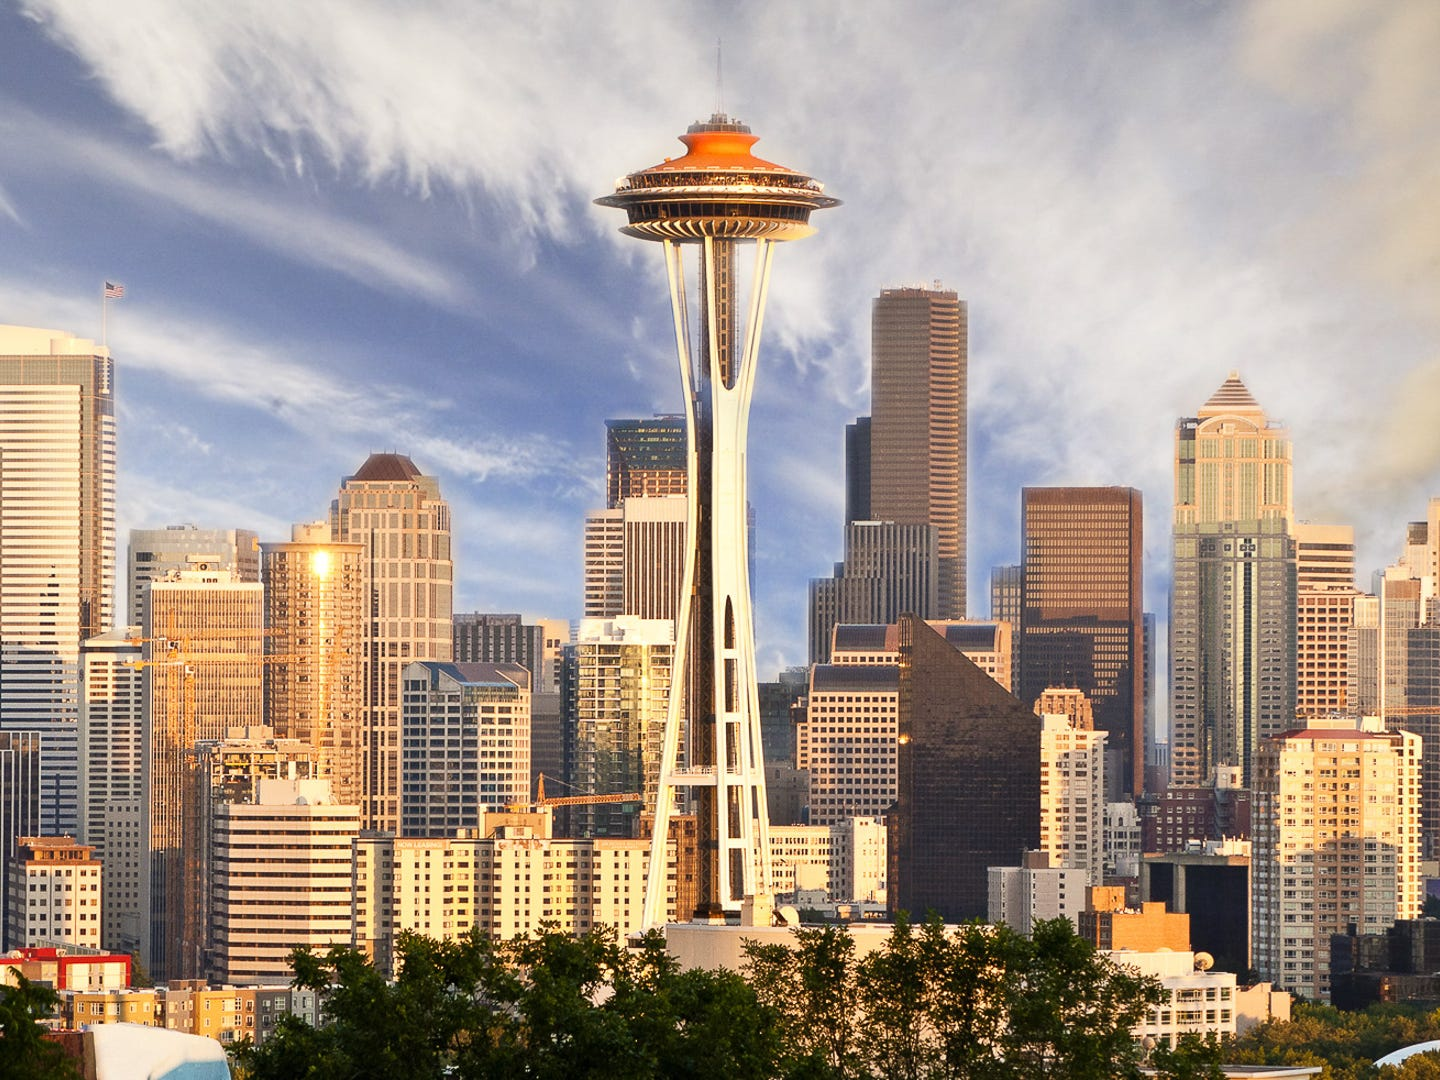 No. 14: Seattle. Thanksgiving trip cost: $1,163. Christmas trip cost: $1,119.50. A trip to Seattle during the cold, rainy winter might not seem ideal. But, if you're looking for cheap holiday vacations, you should consider Washington's largest city. There are plenty of Christmas activities to do, including shopping at the Westlake Park Holiday Market and ice skating at the Seattle Center Winterfest.